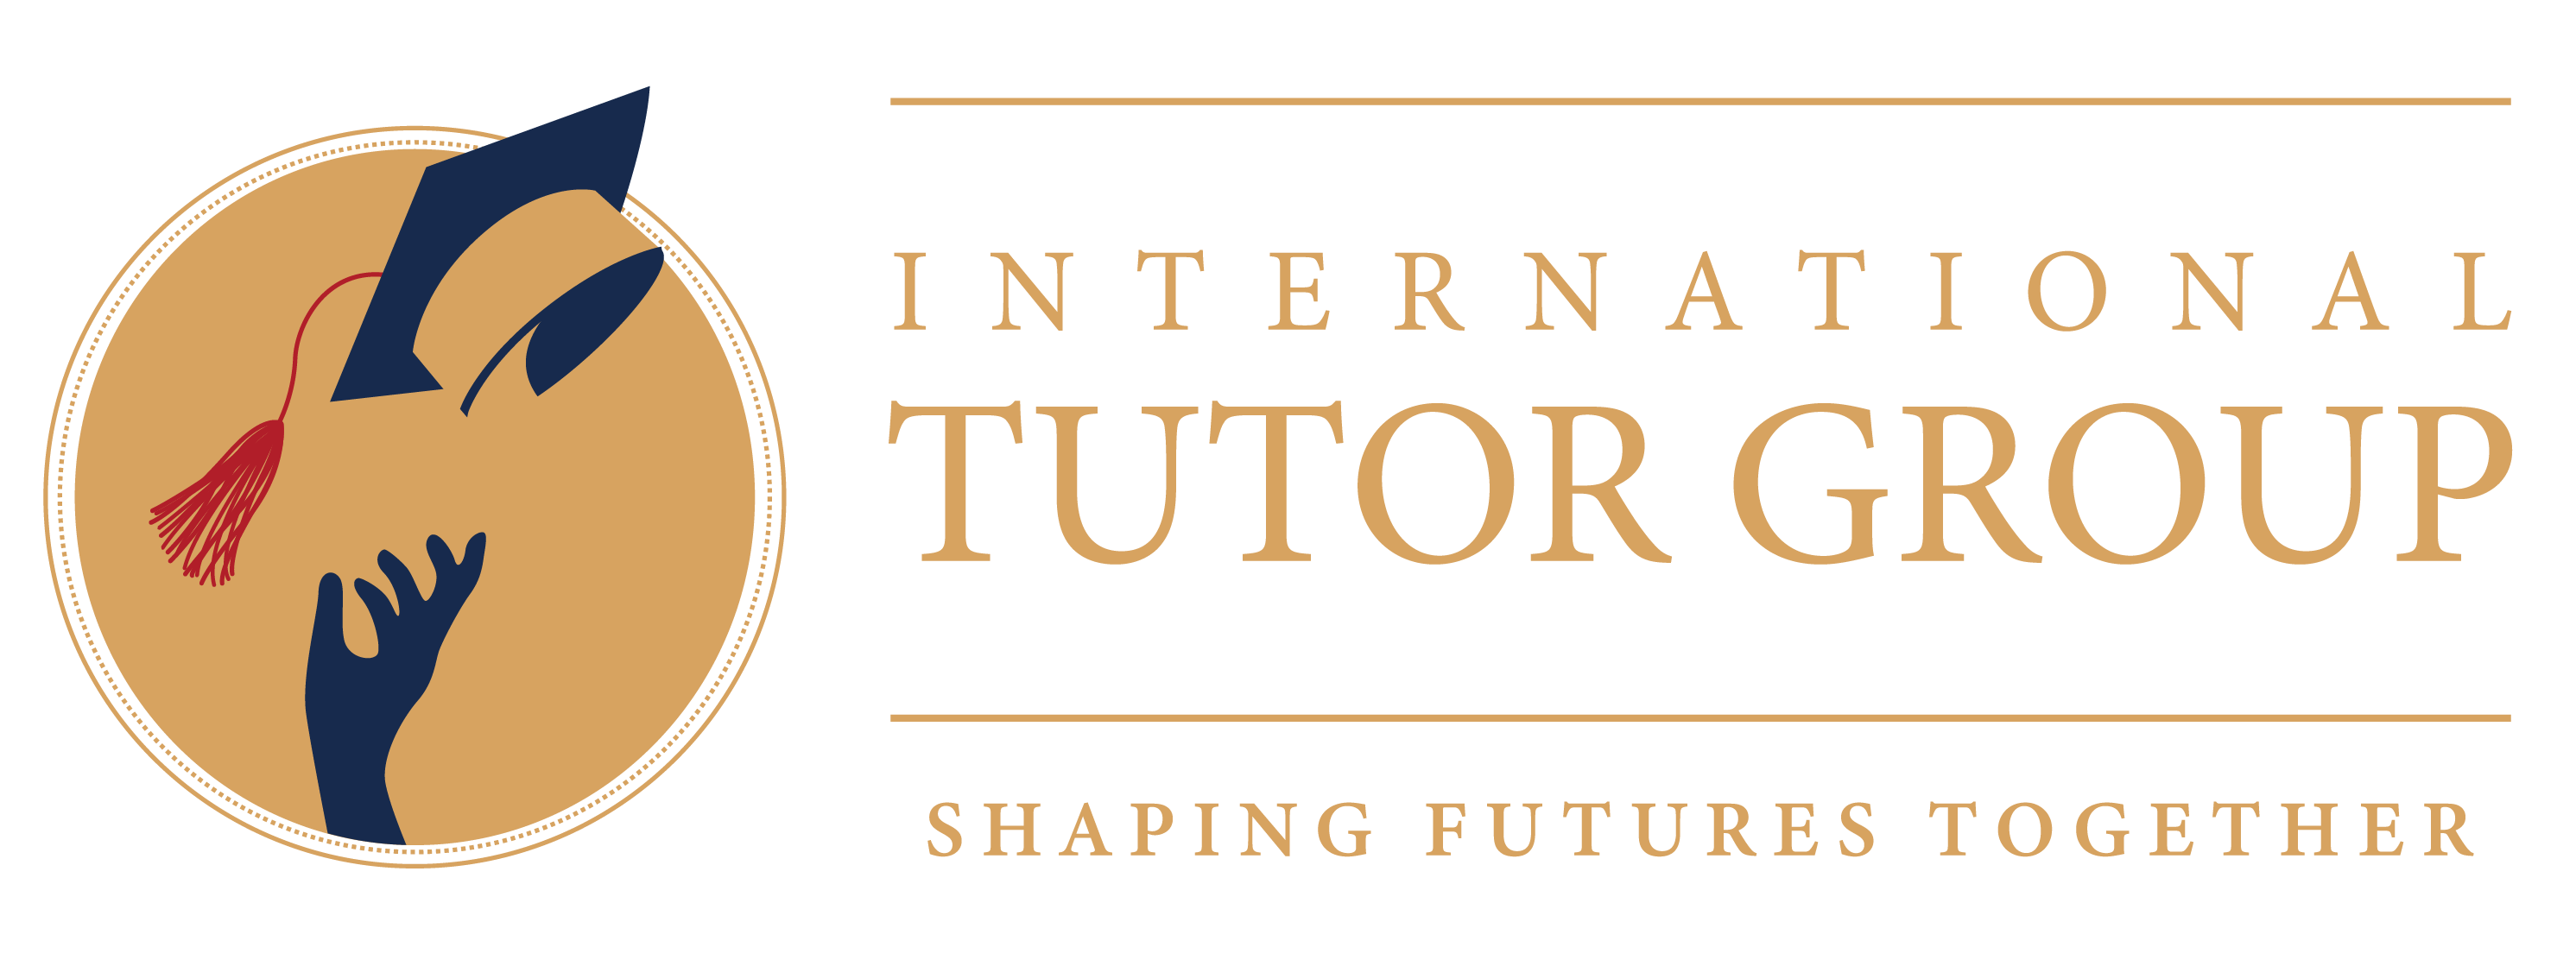 International Tutor Group